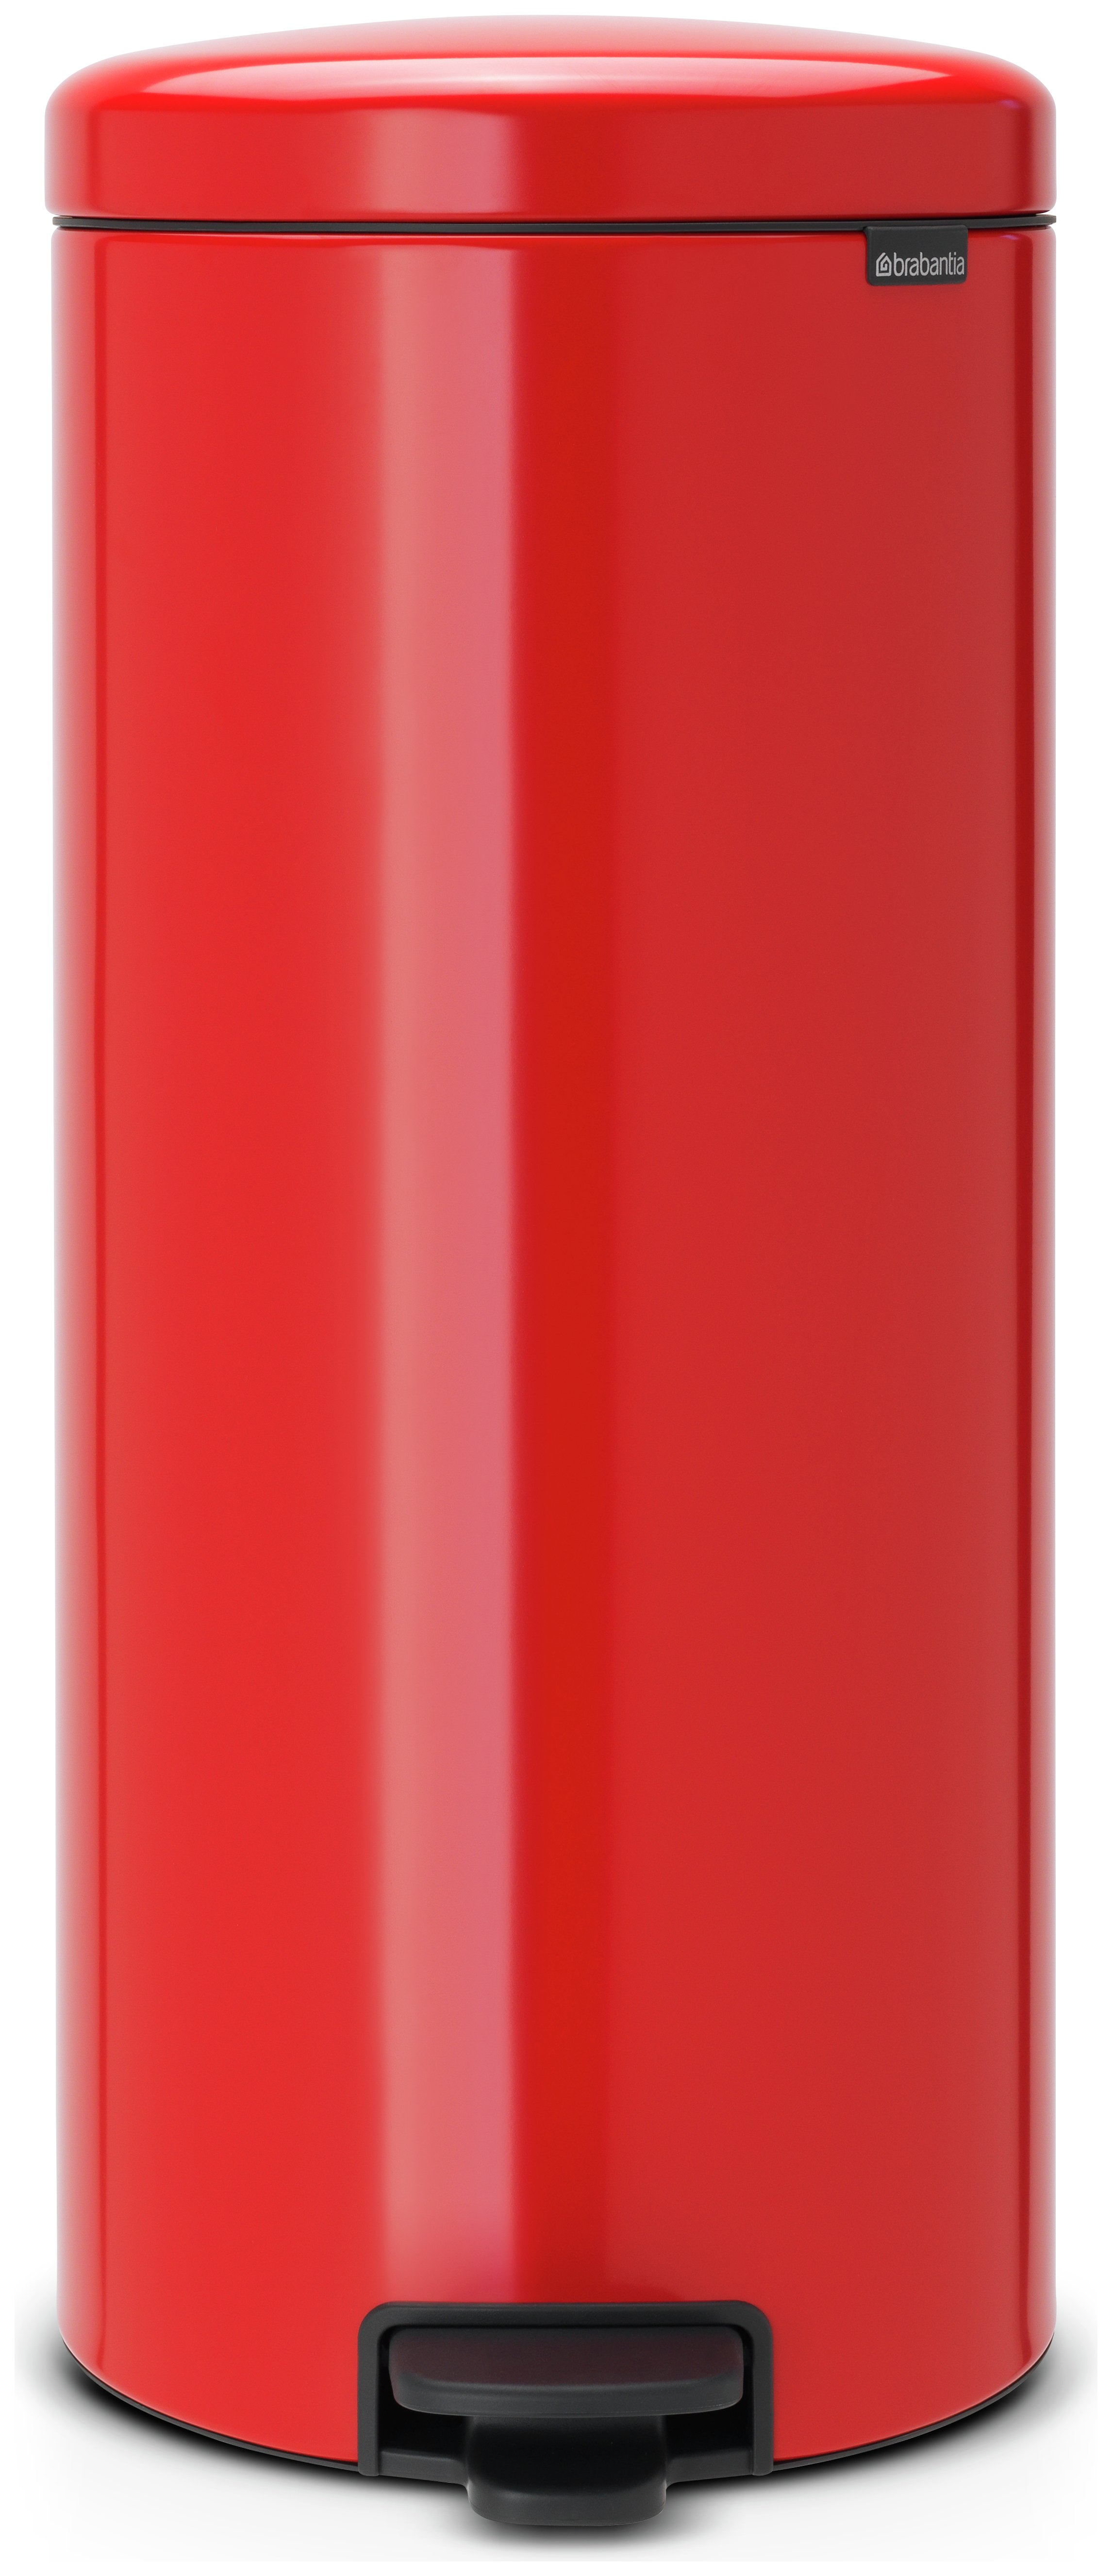 Image of Brabantia newIcon 30 Litre Pedal Bin ??? Red.